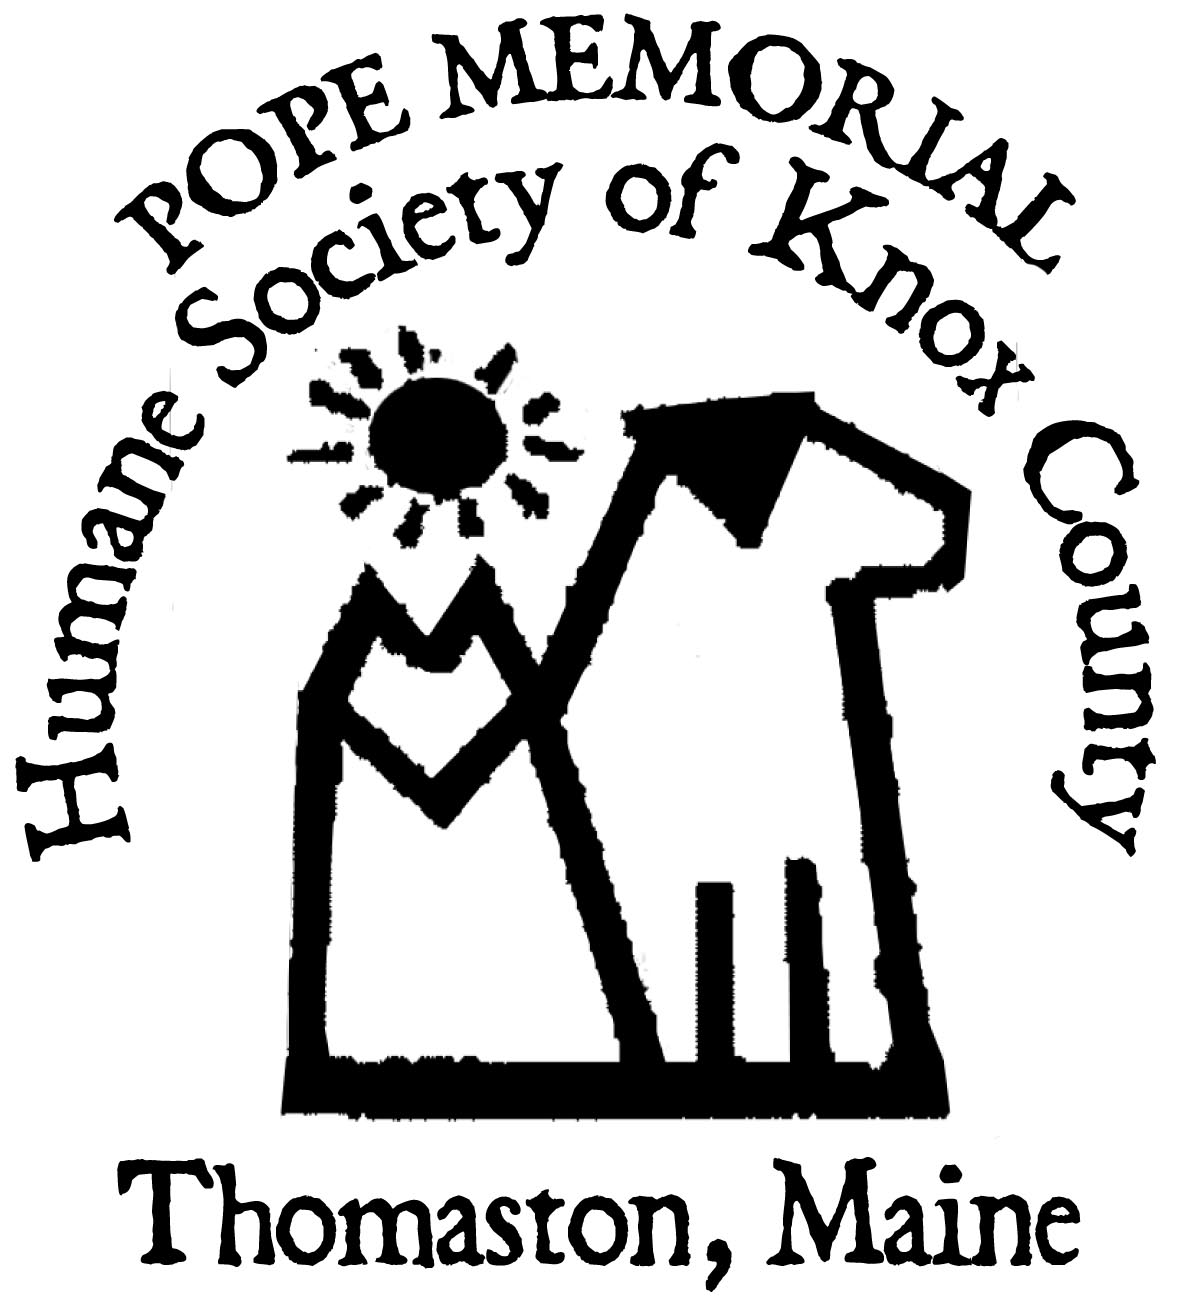 Pope Memorial Humane Society of Knox County